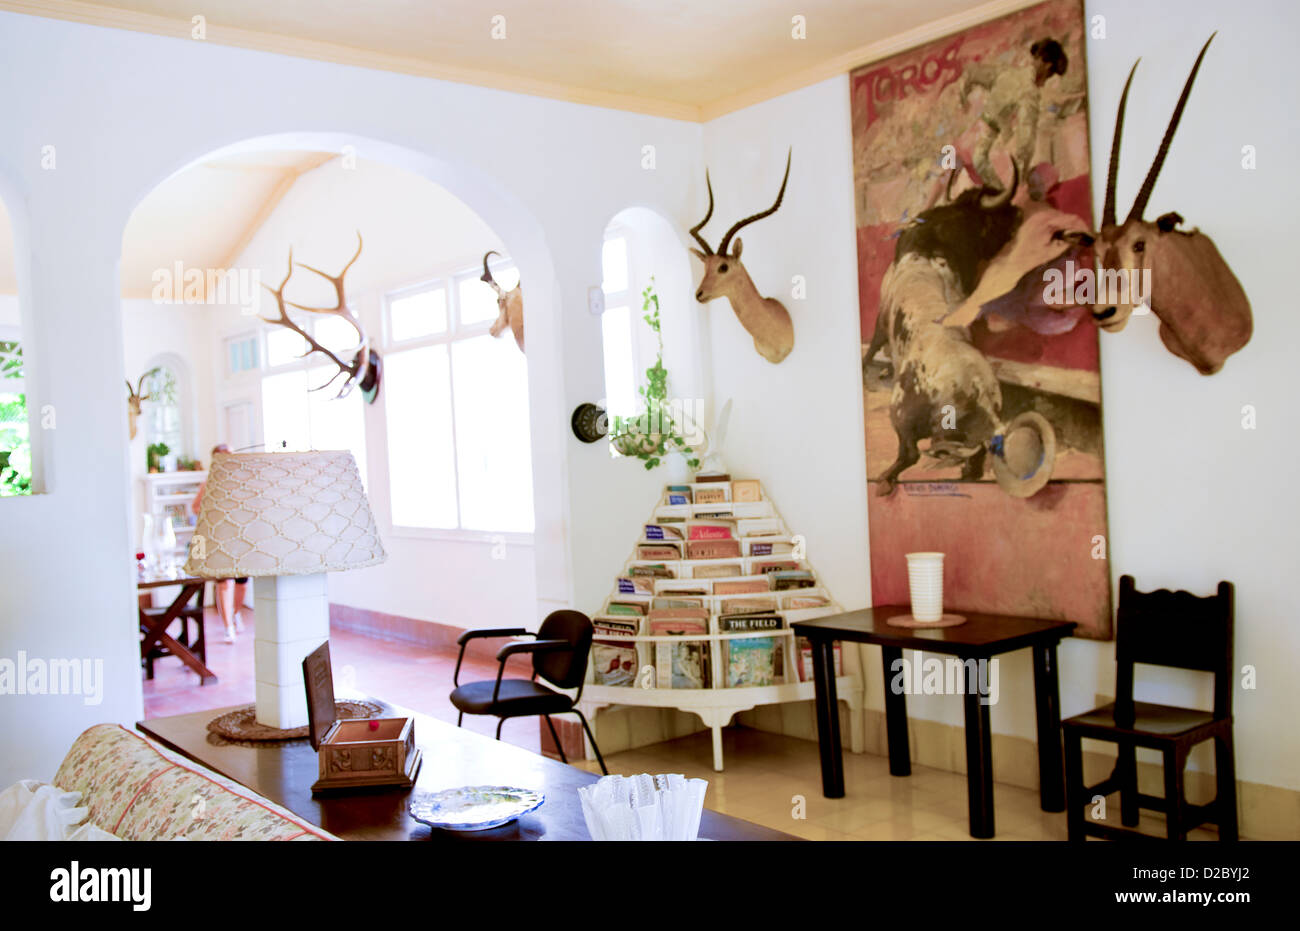 Historical Home Of Ernest Hemingway In Havana, Cuba Stock Photo